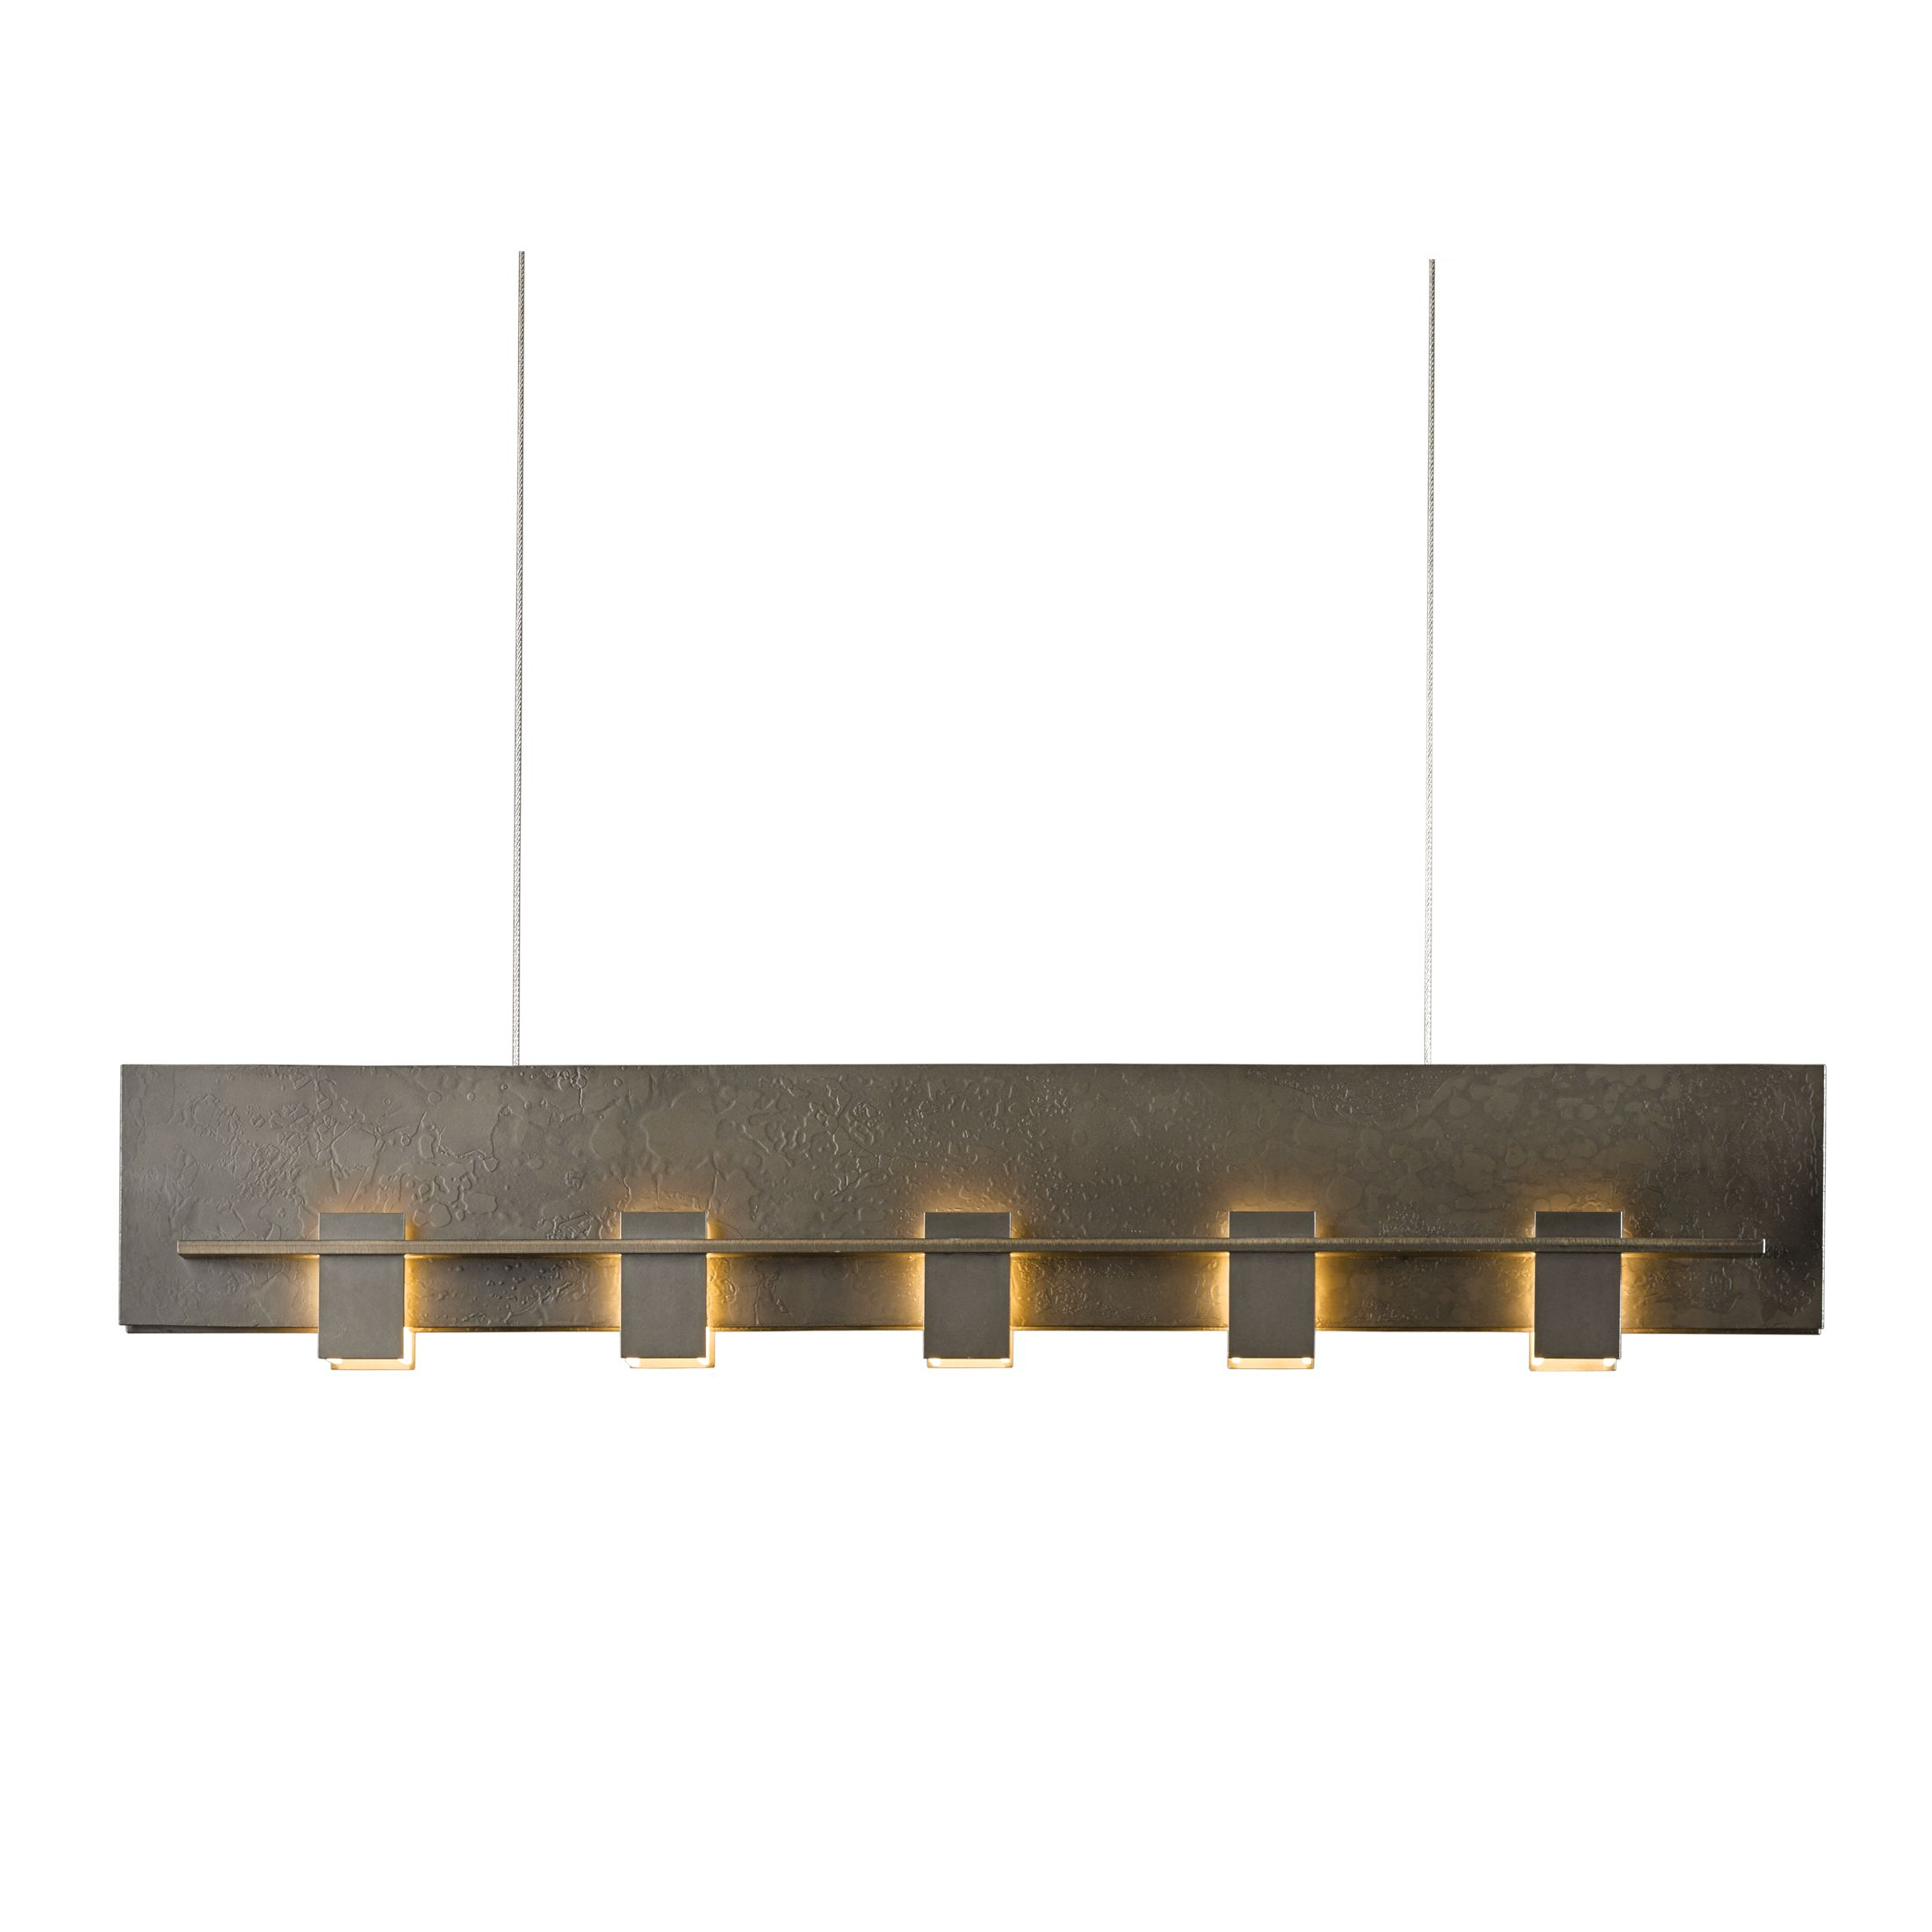 Hubbardton Forge Twilight: Aperture Vertical Sconce